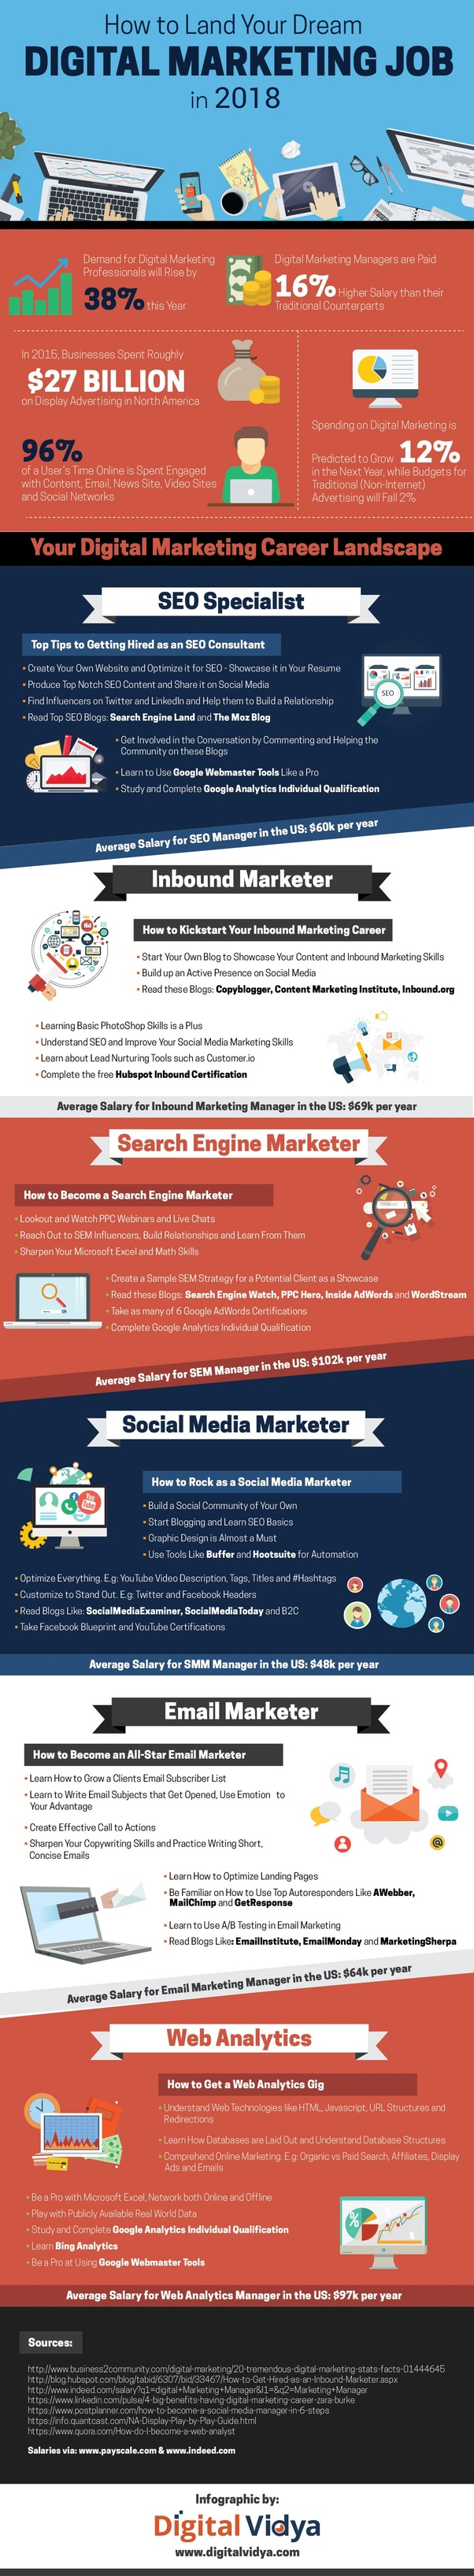 How good is a career in digital marketing quora you might be wondering what kind of skills one should have to be successful in digital marketing in addition to technical skills listed above fandeluxe Image collections